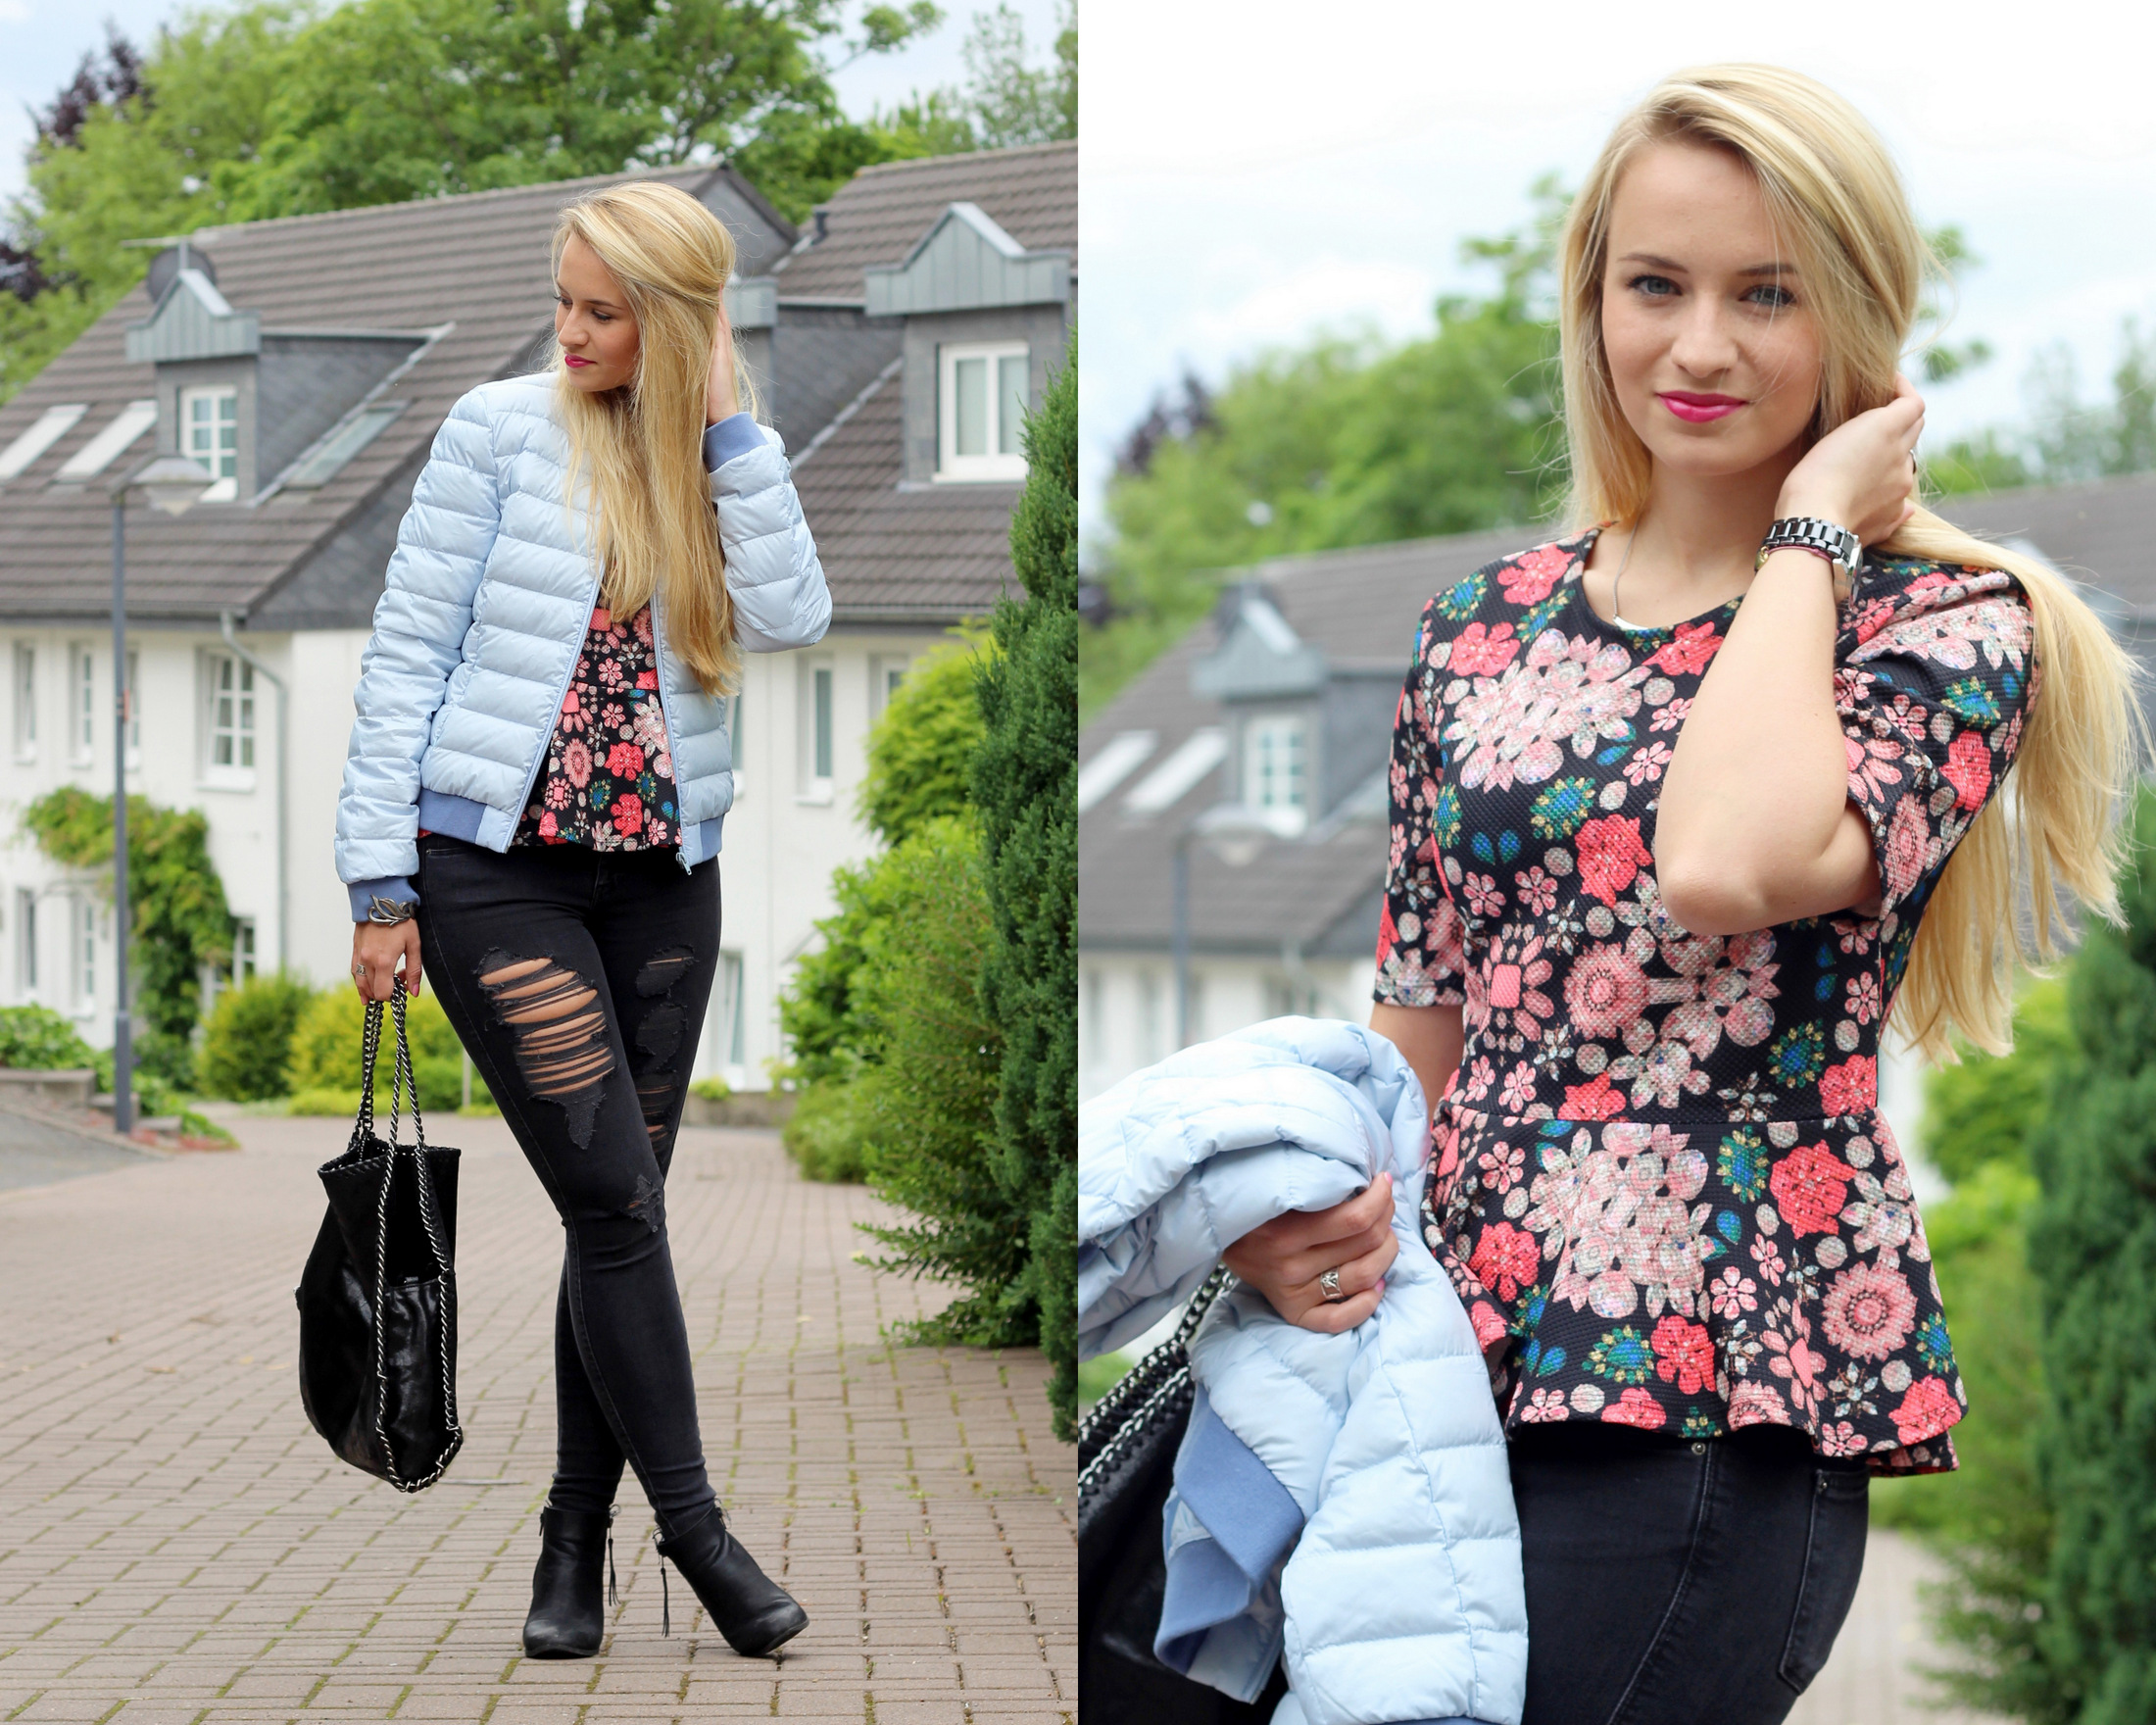 lightweight-jacket-peplum-shirt-flowers-skinny-jeans-ripped-destroyed-jeans (4)